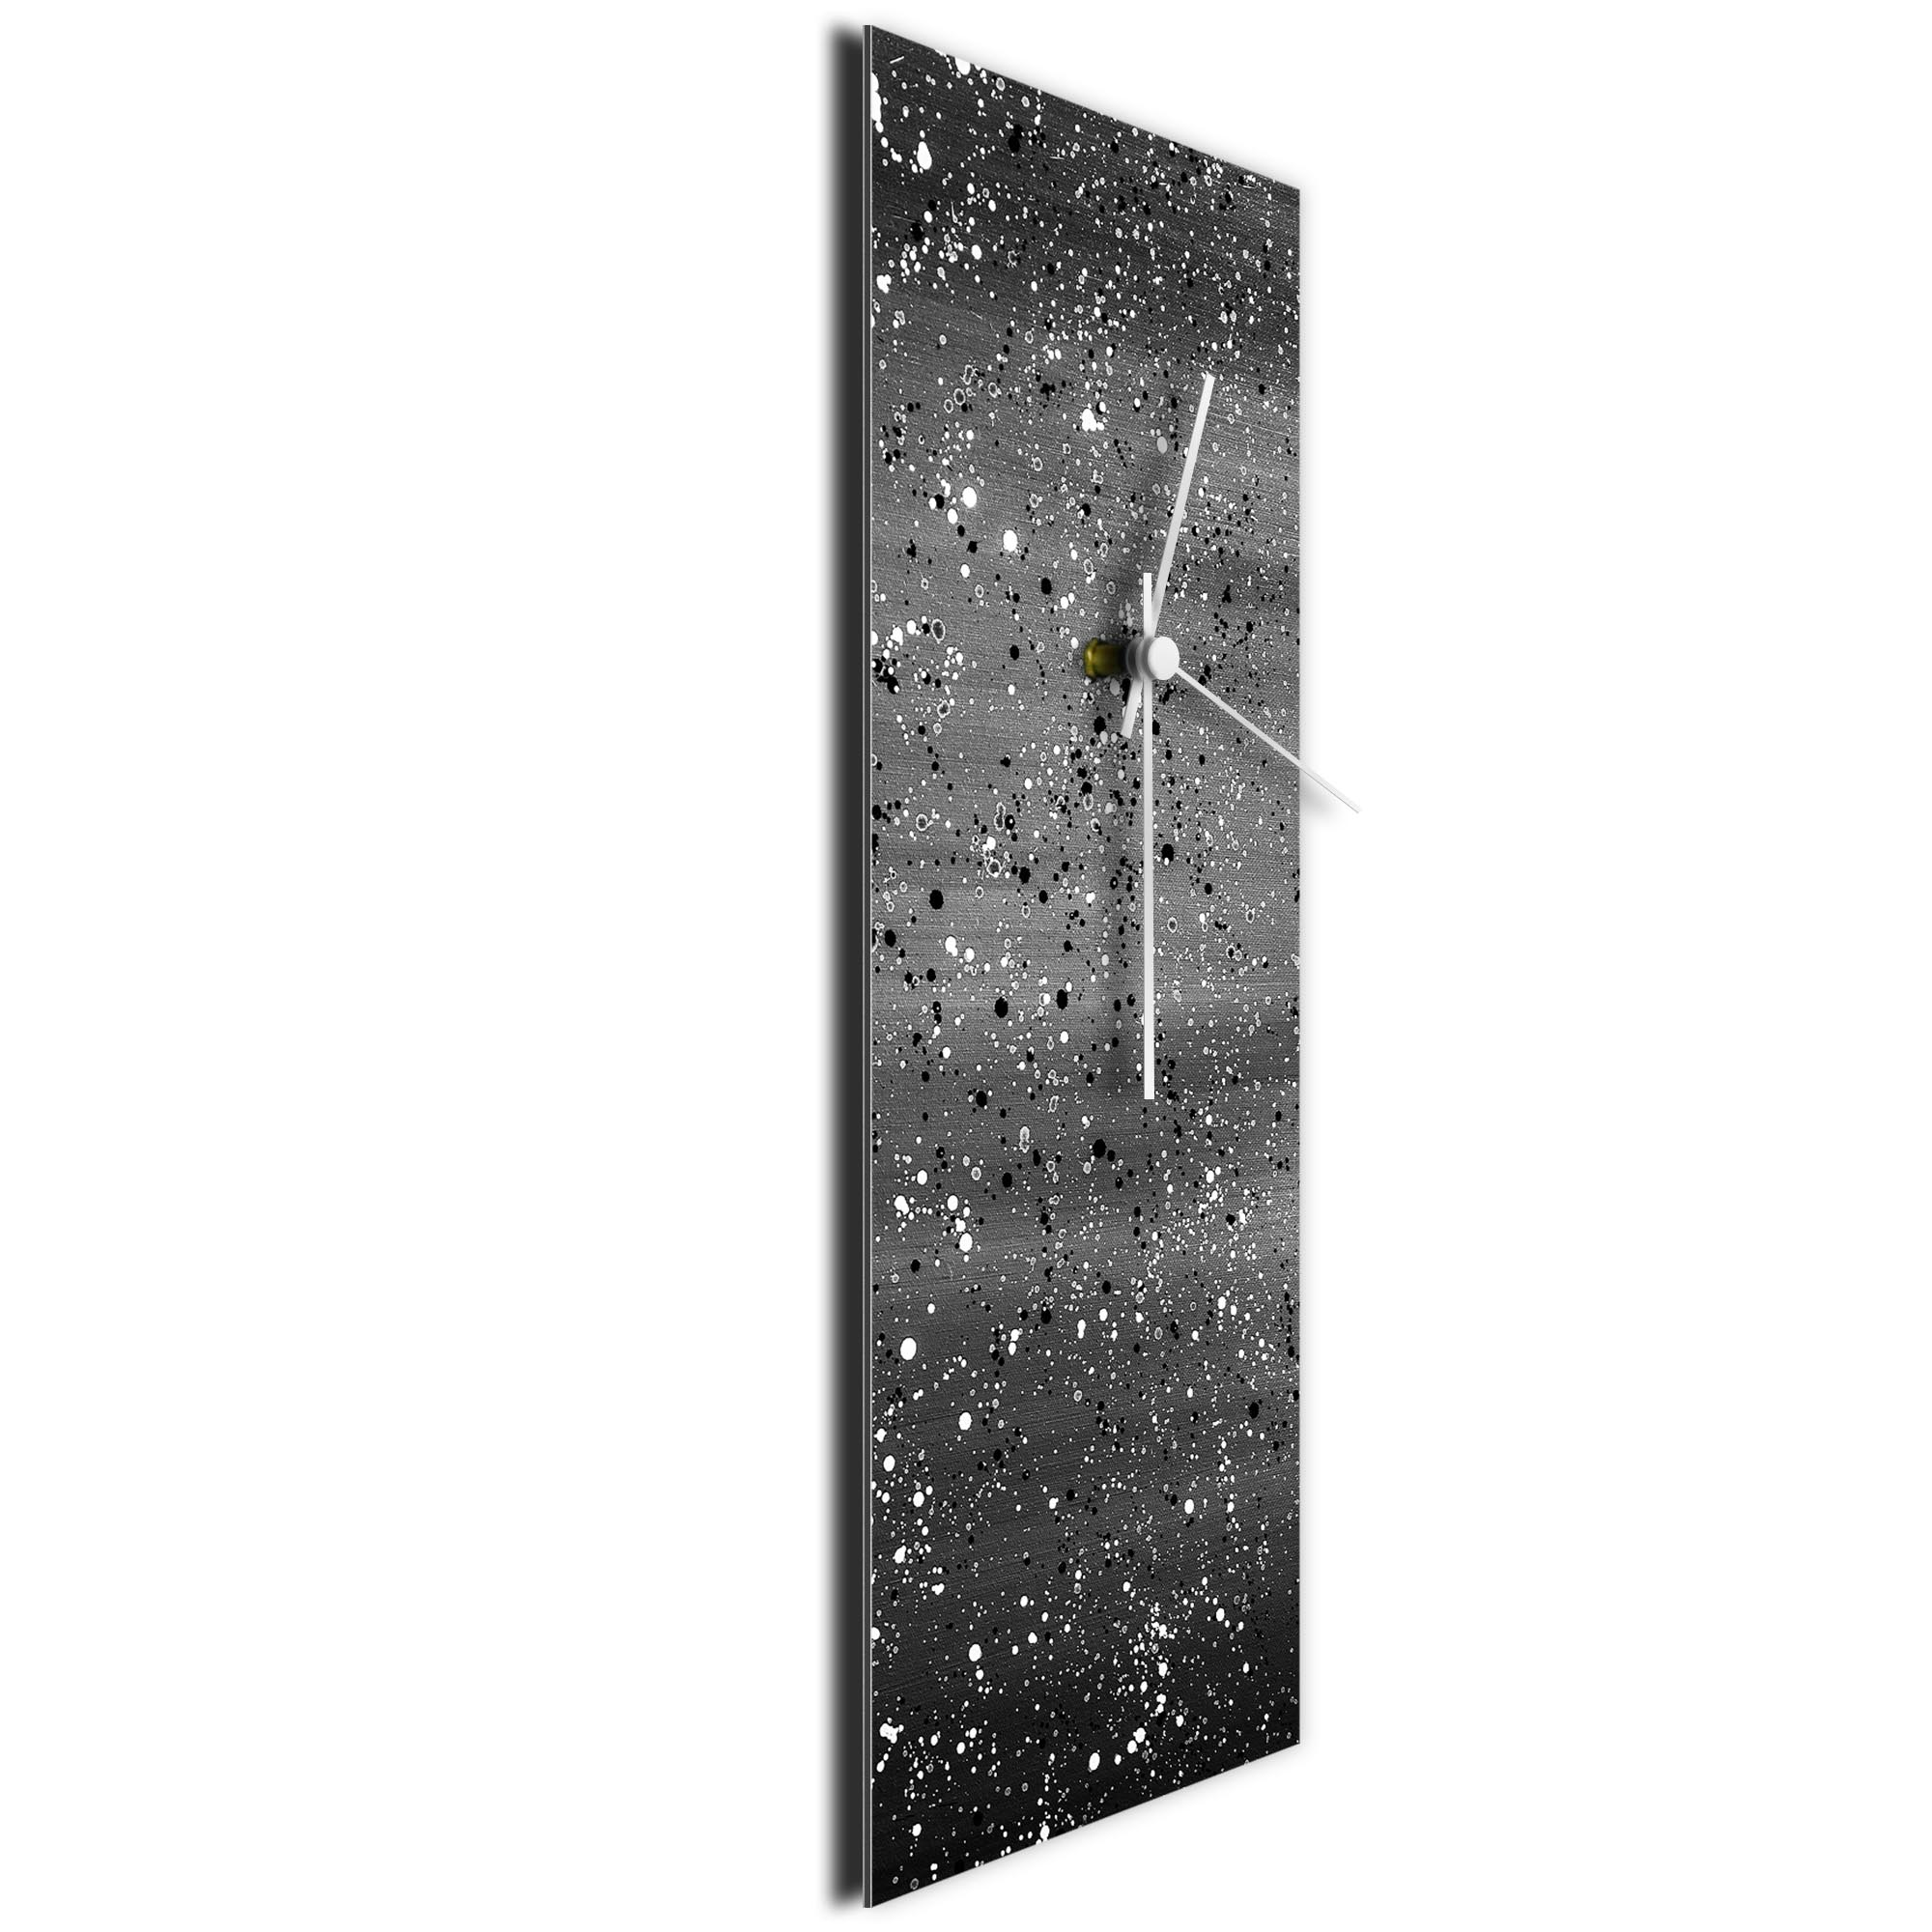 Black Flecked Clock Large by Mendo Vasilevski - Urban Abstract Home Decor - Image 3